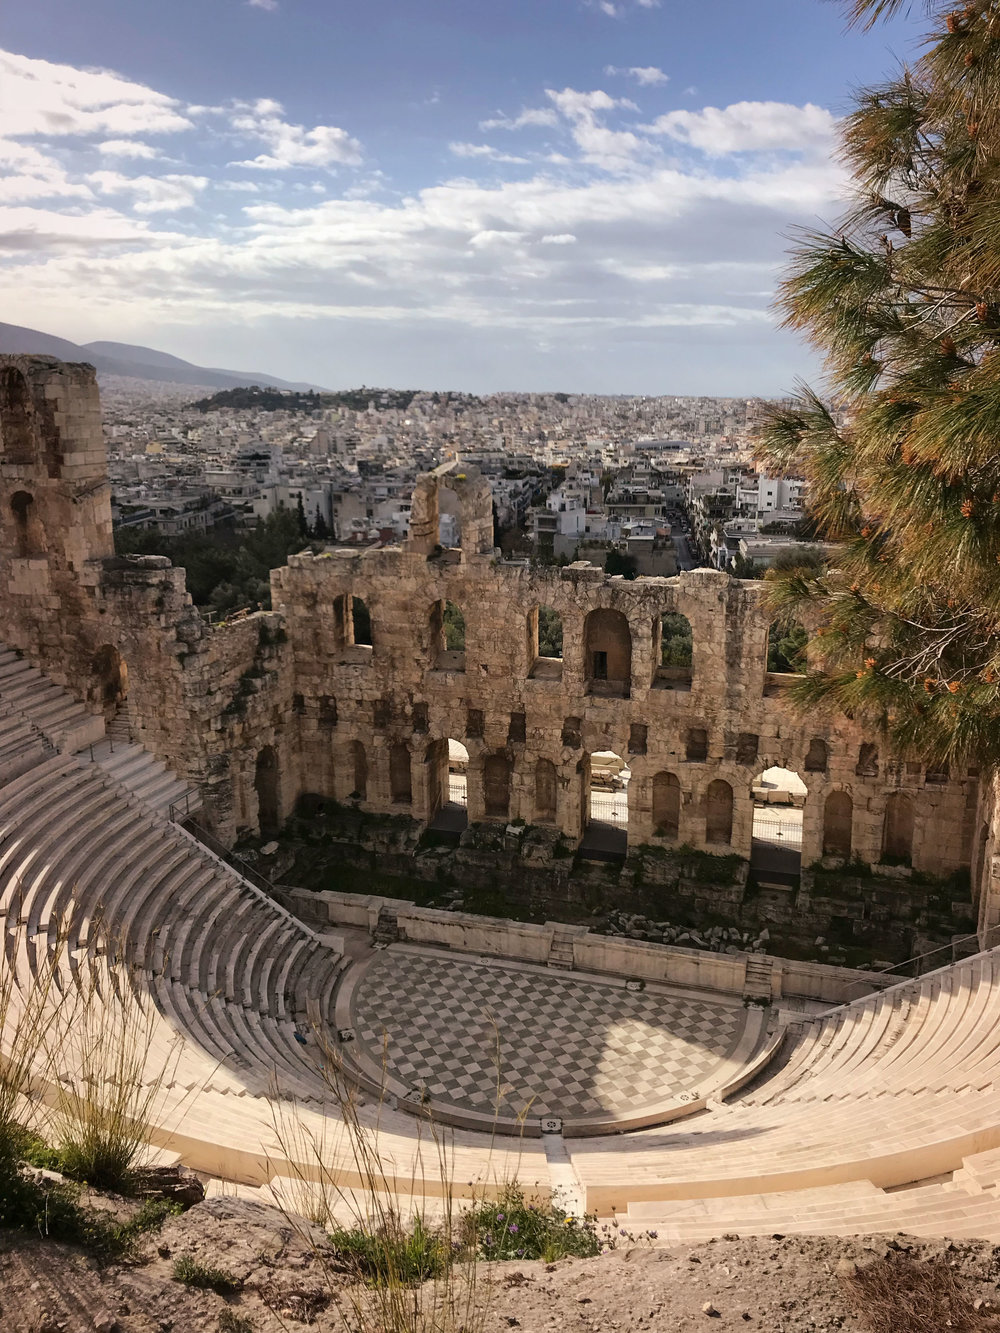 Ruins at the Acropolis overlooking beautiful Athens